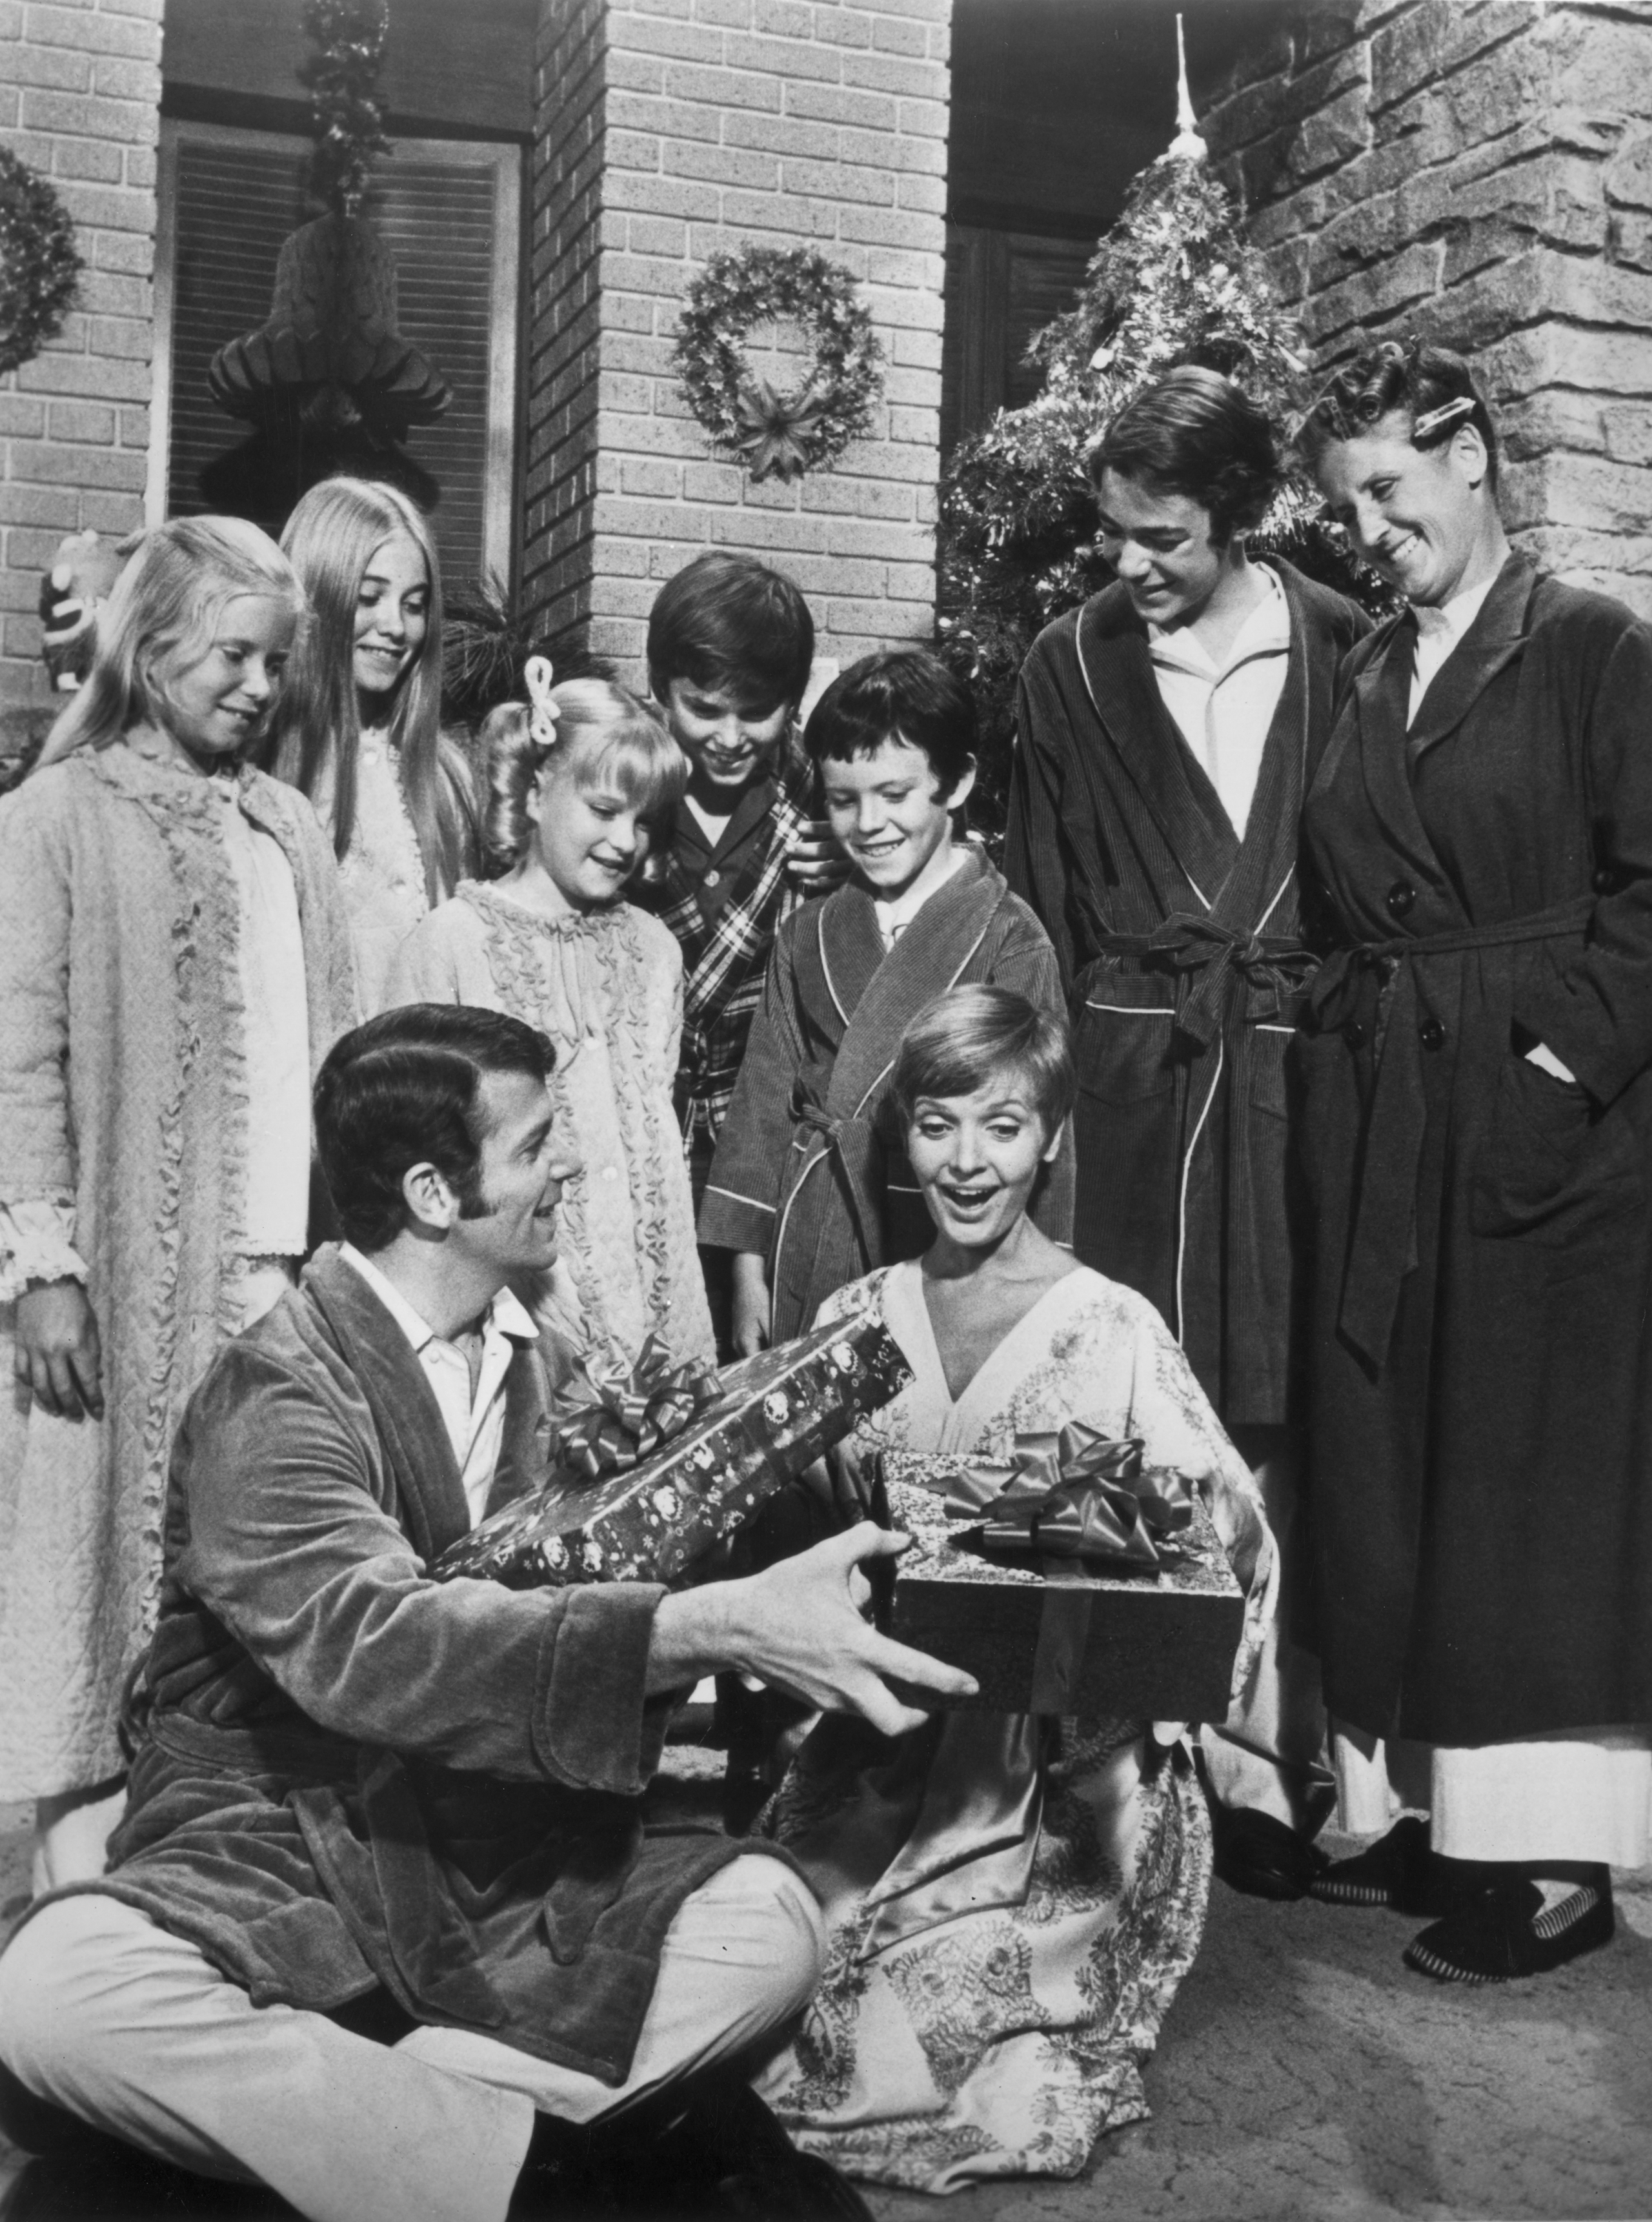 The cast of the television series 'The Brady Bunch' stands and watches  Robert Reed and Florence Henderson exchange wrapped Christmas presents during the episode 'A Very Brady Christmas'.